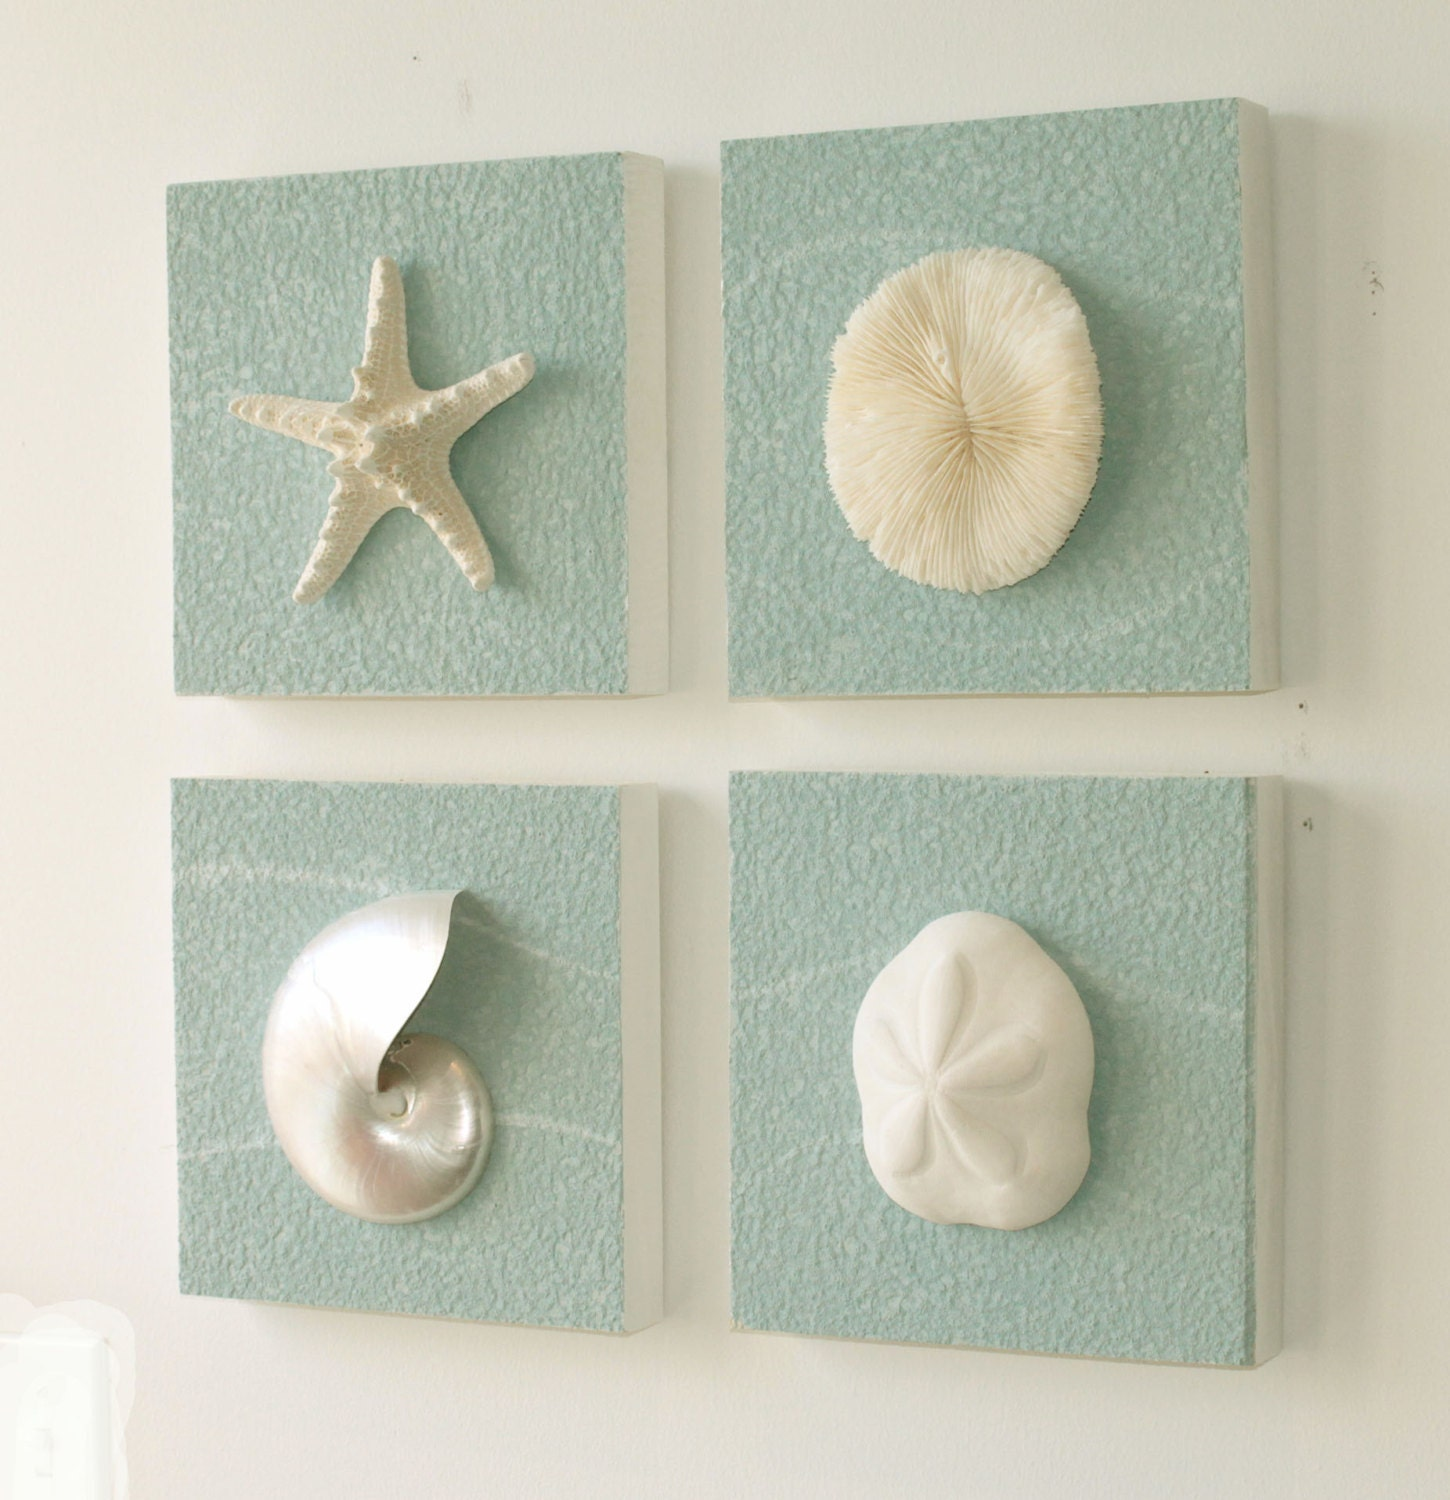 Items Similar To Beach Decor On Driftwood Panel For Coastal Wall Decor Set Of